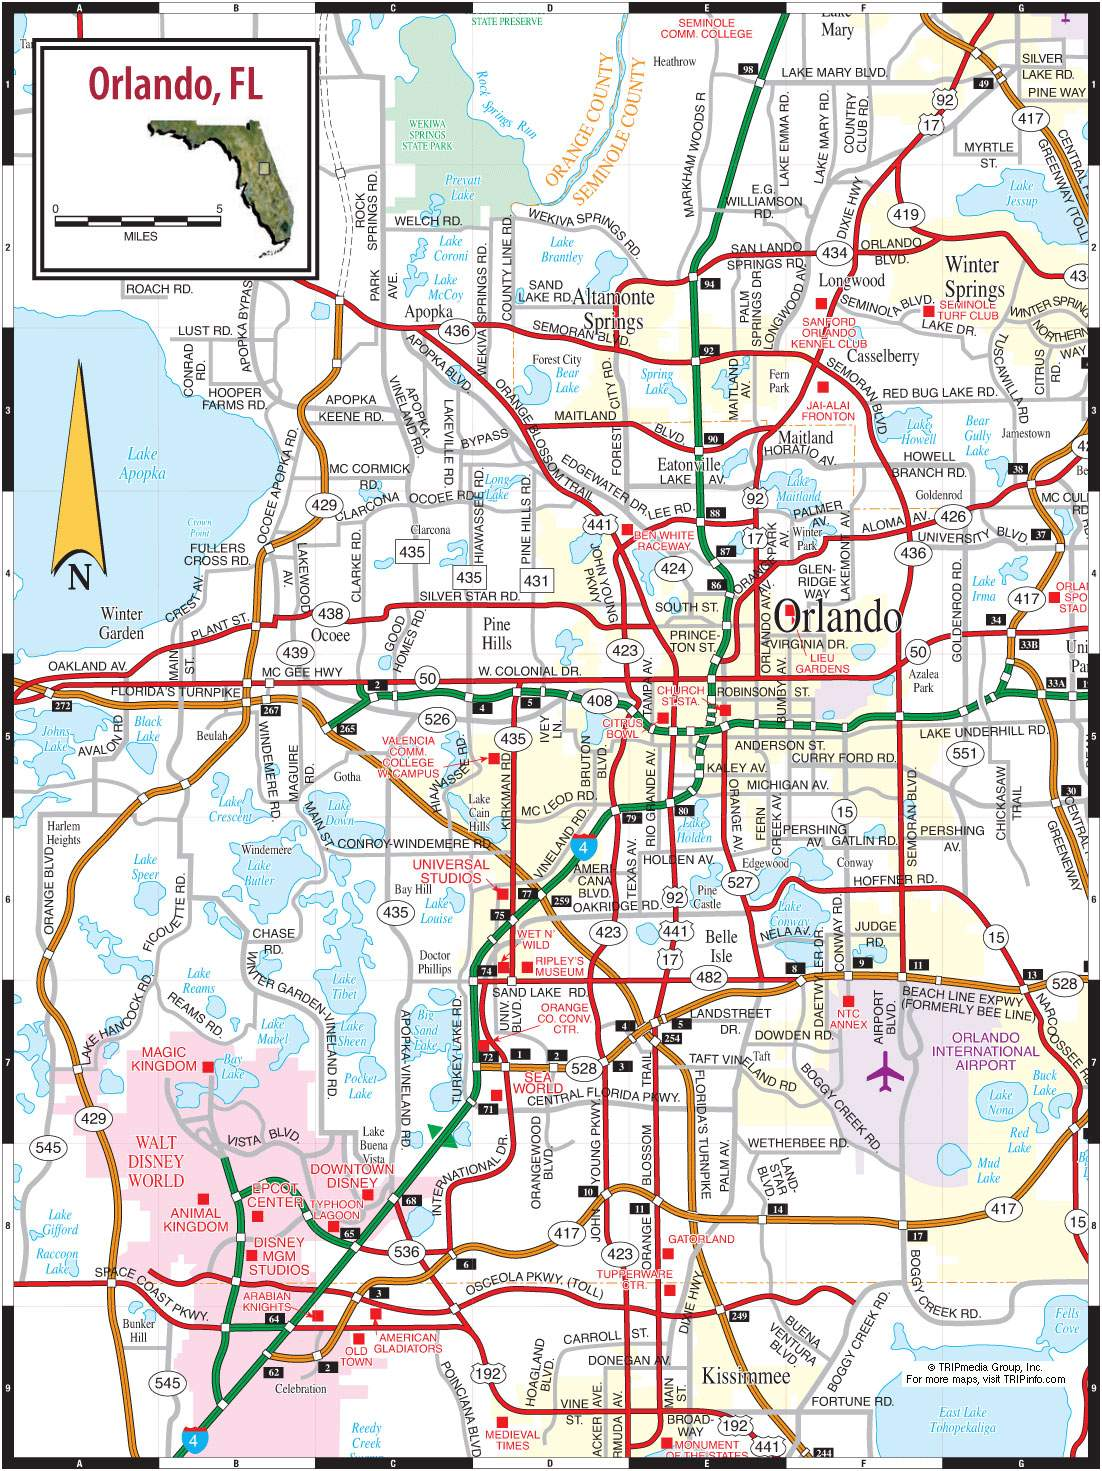 Orlando Tourist Map Pdf Large Orlando Maps for Free Download and Print | High Resolution